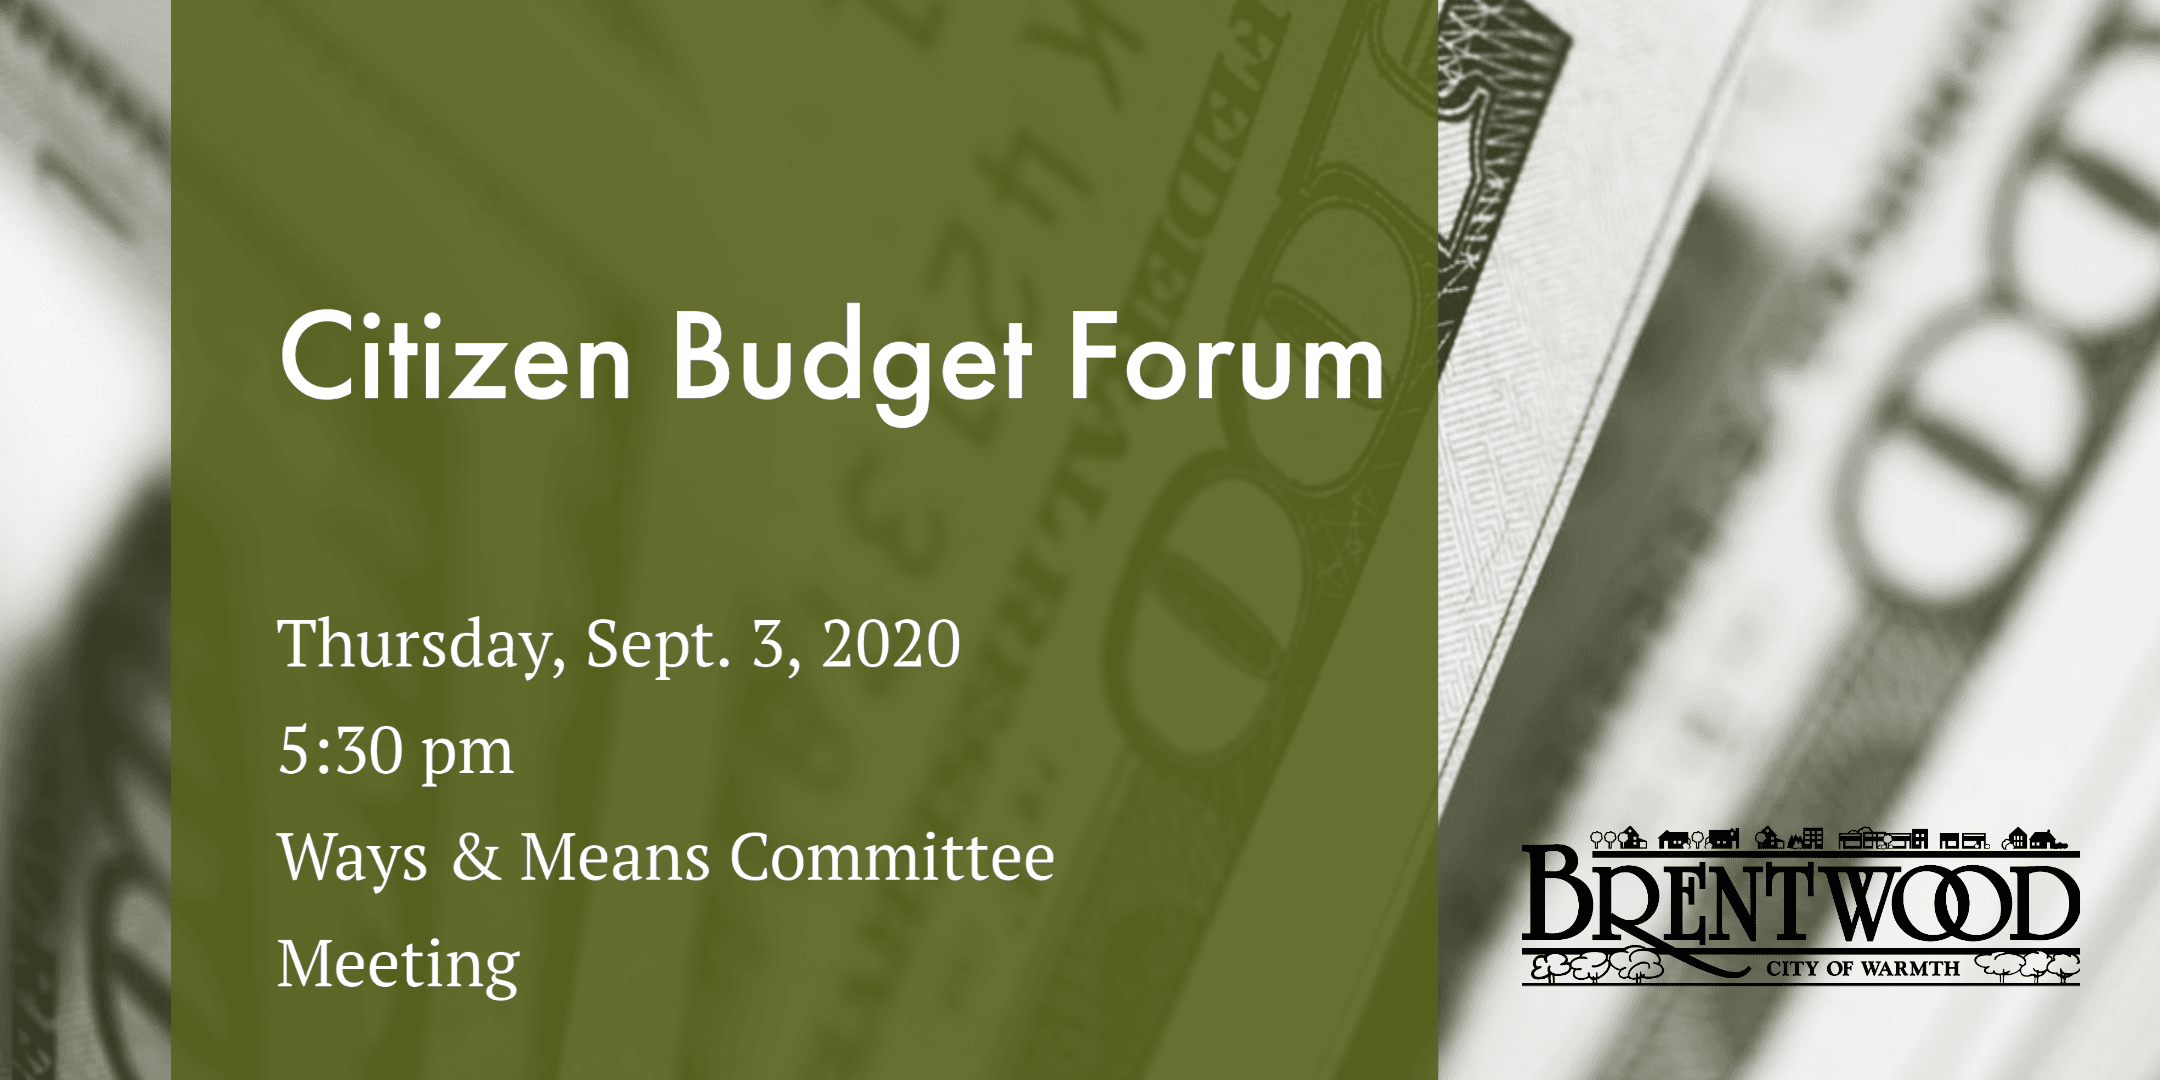 Citizen Budget Forum 2020